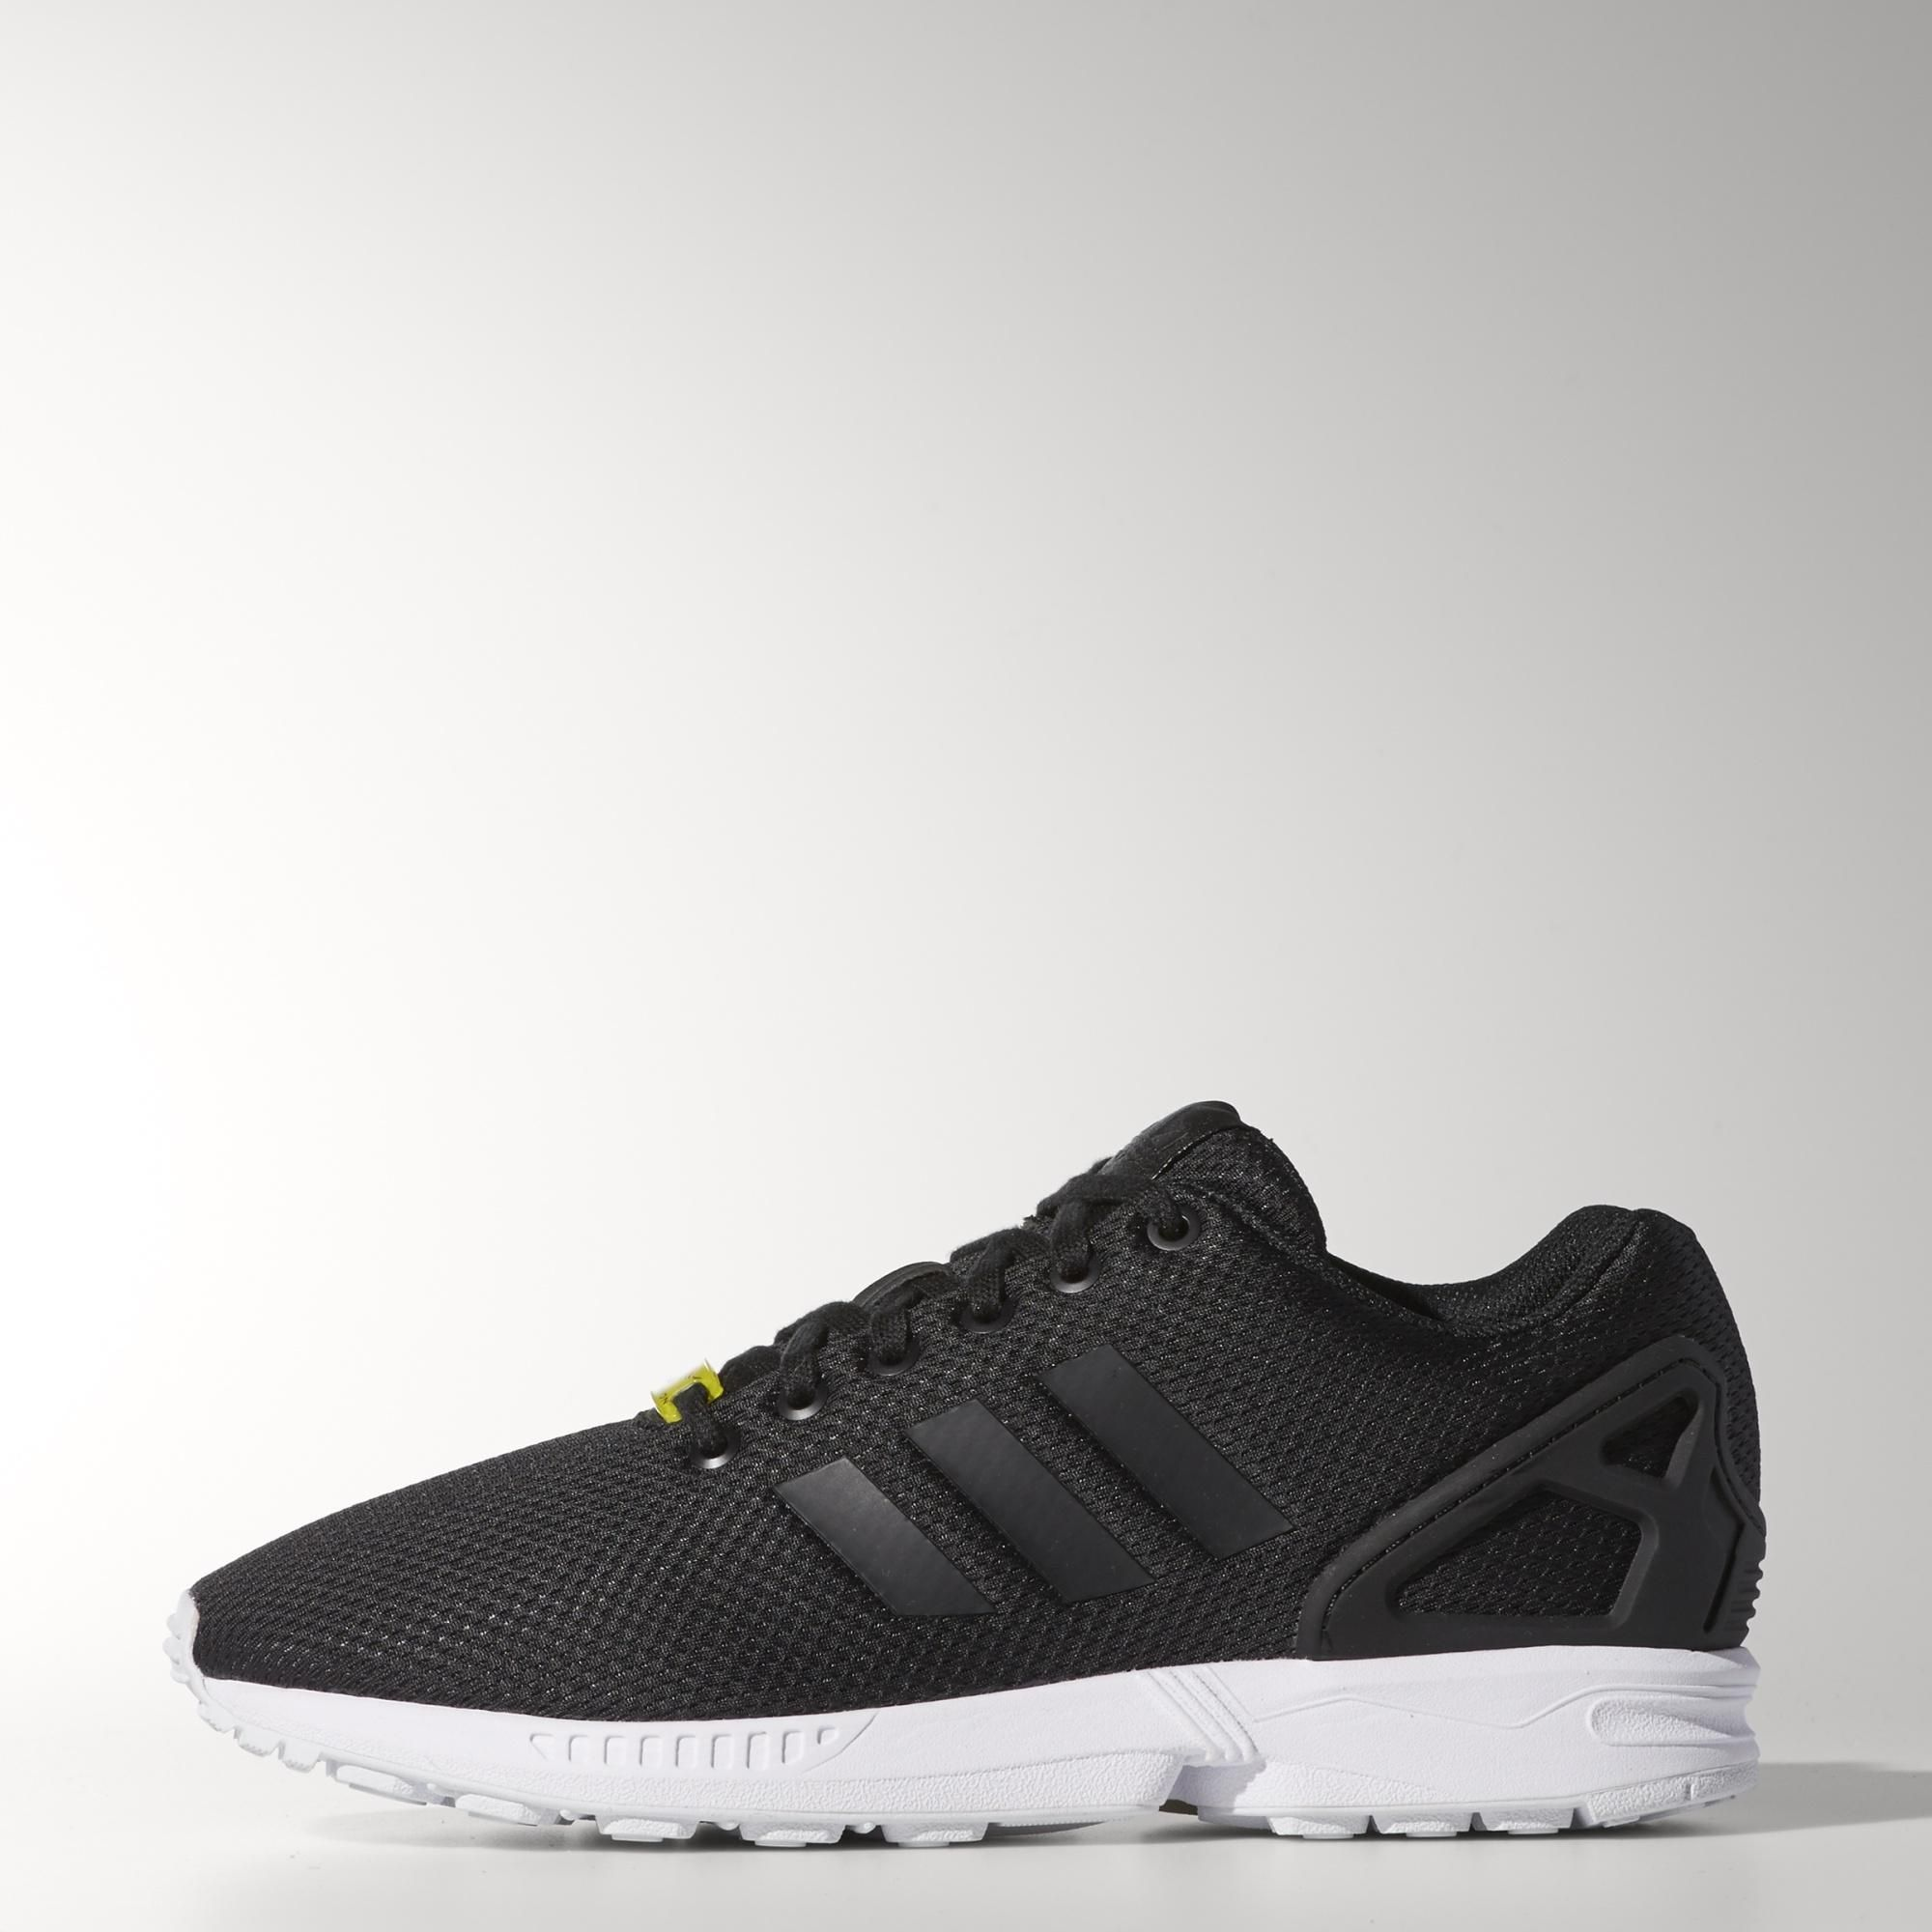 adidas men's originals zx flux shoes nz